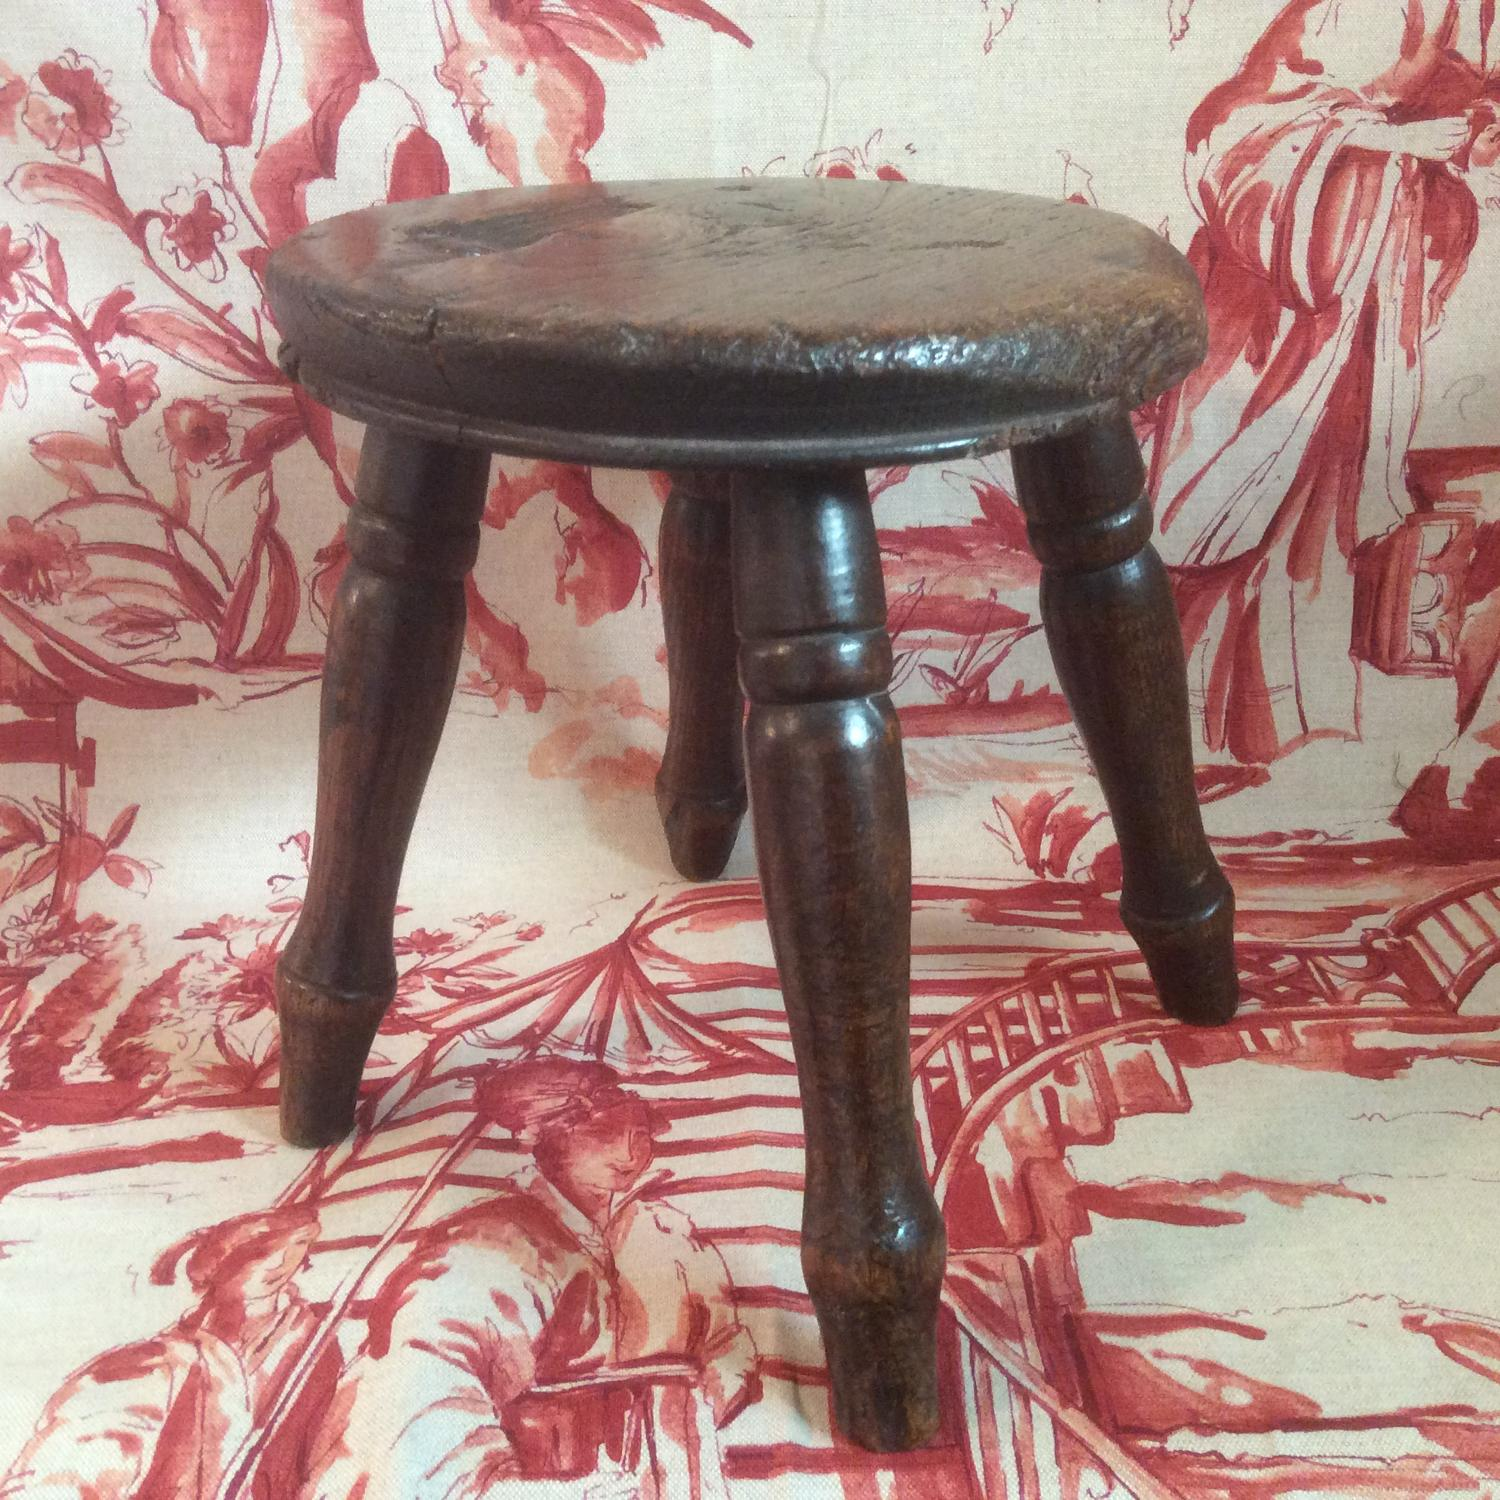 Late 19th century/early 20th milking stool